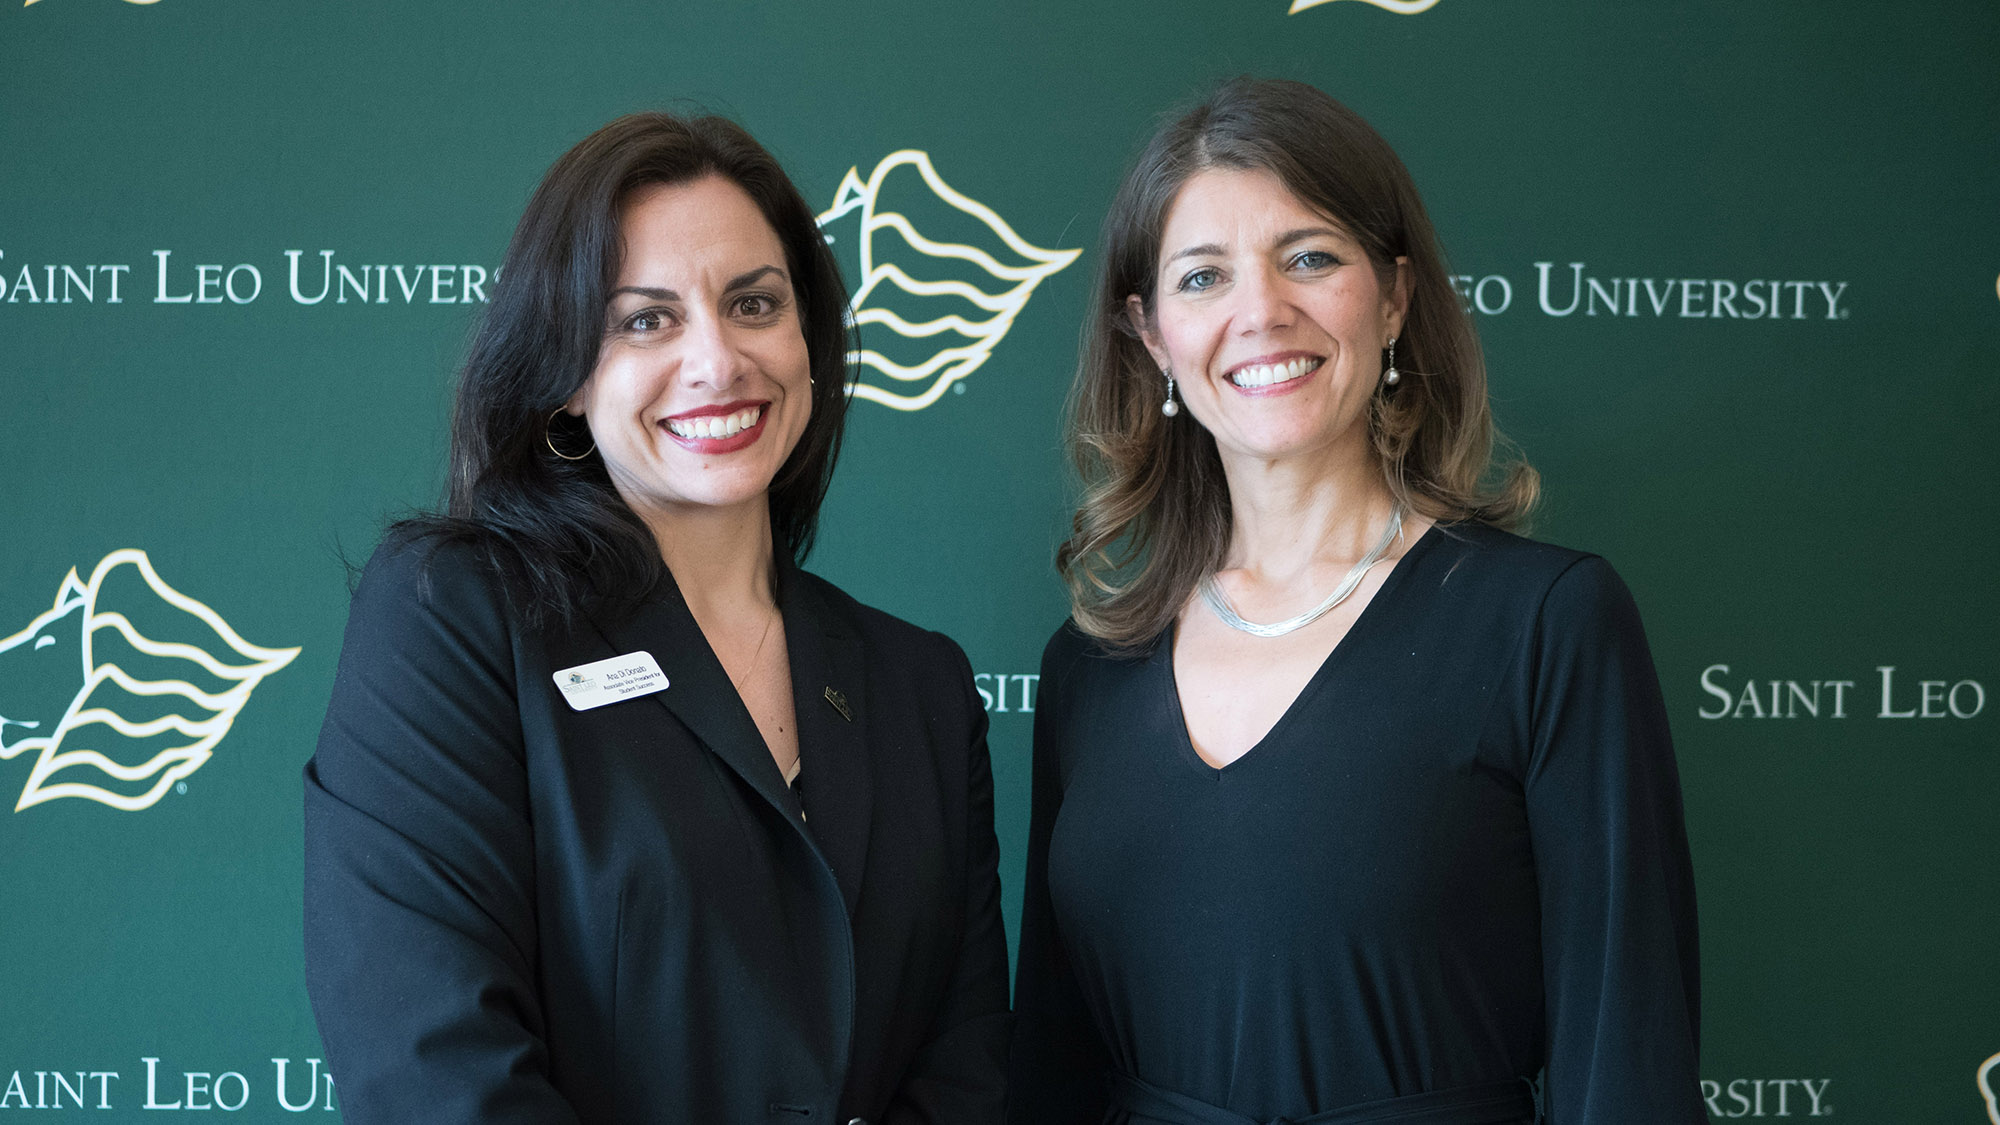 Saint Leo University's Ana Dinonato and NHI's Nicole Nieto at 2018 ICWS